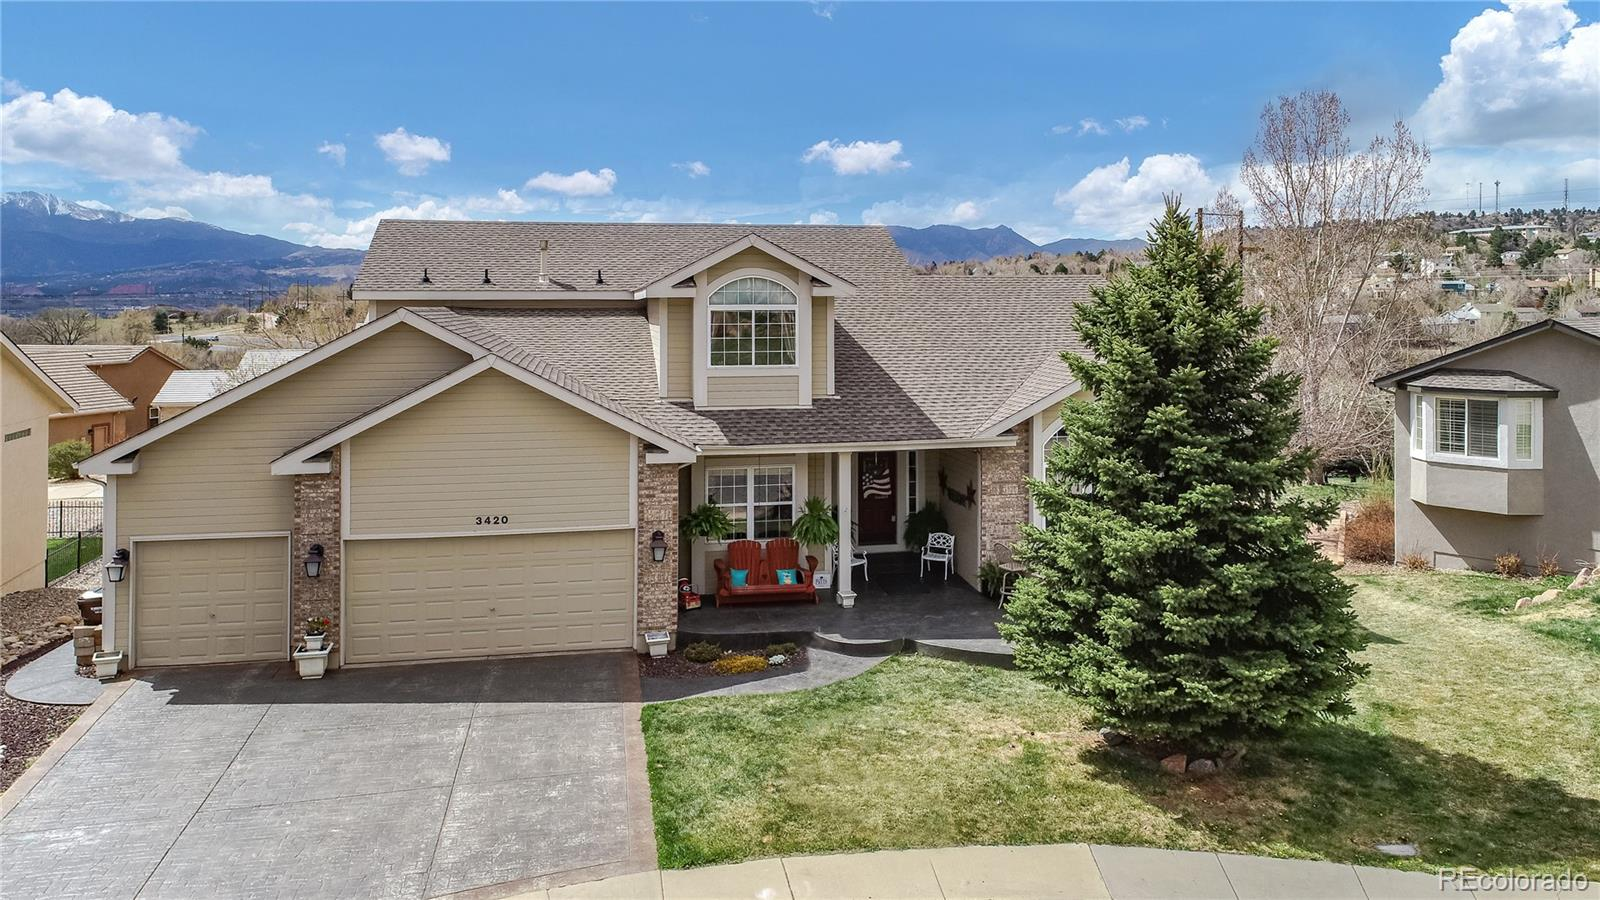 3420 Palmer Hill Court Property Photo - Colorado Springs, CO real estate listing